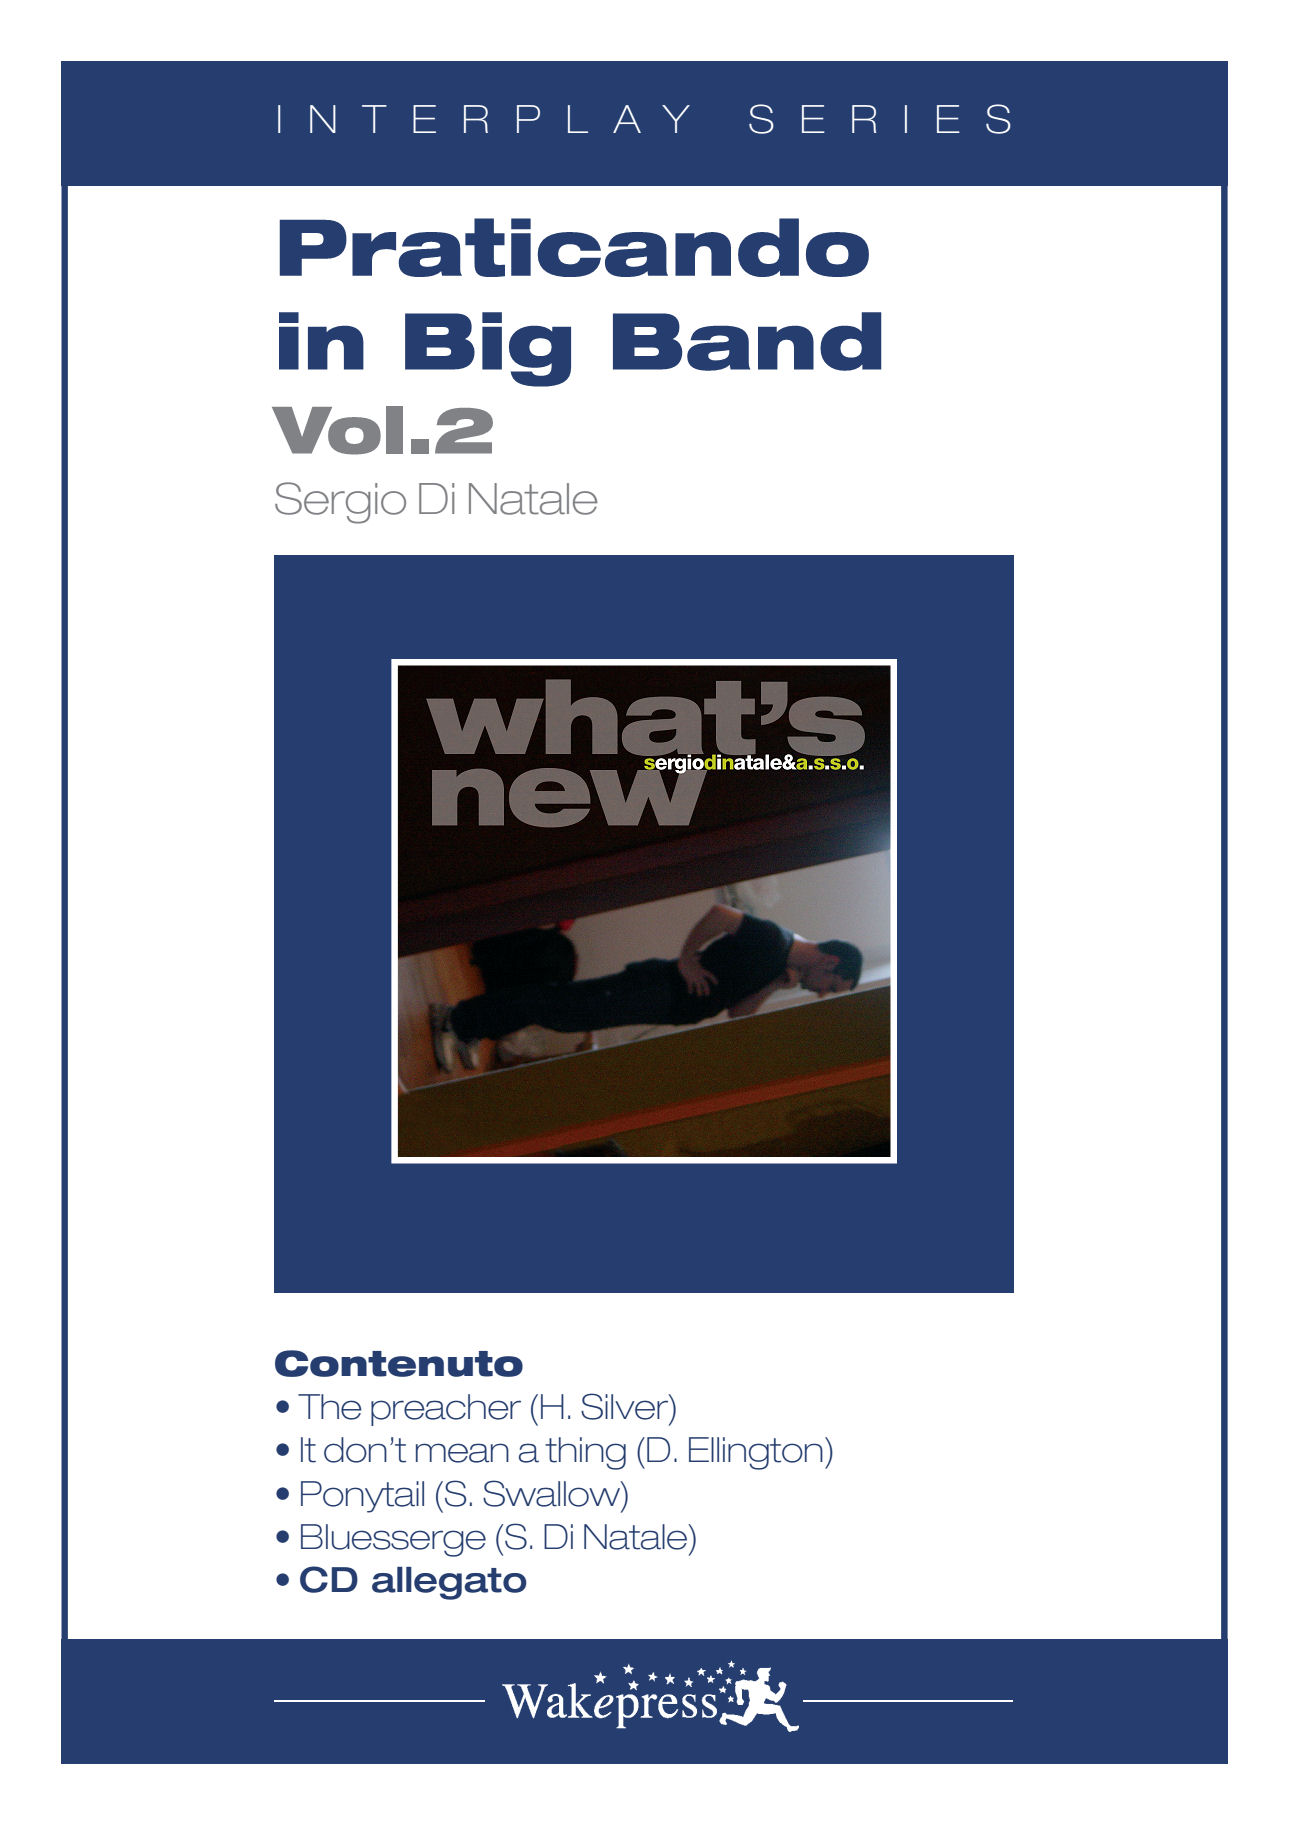 Copertina di PRATICANDO IN BIG BAND Vol.2